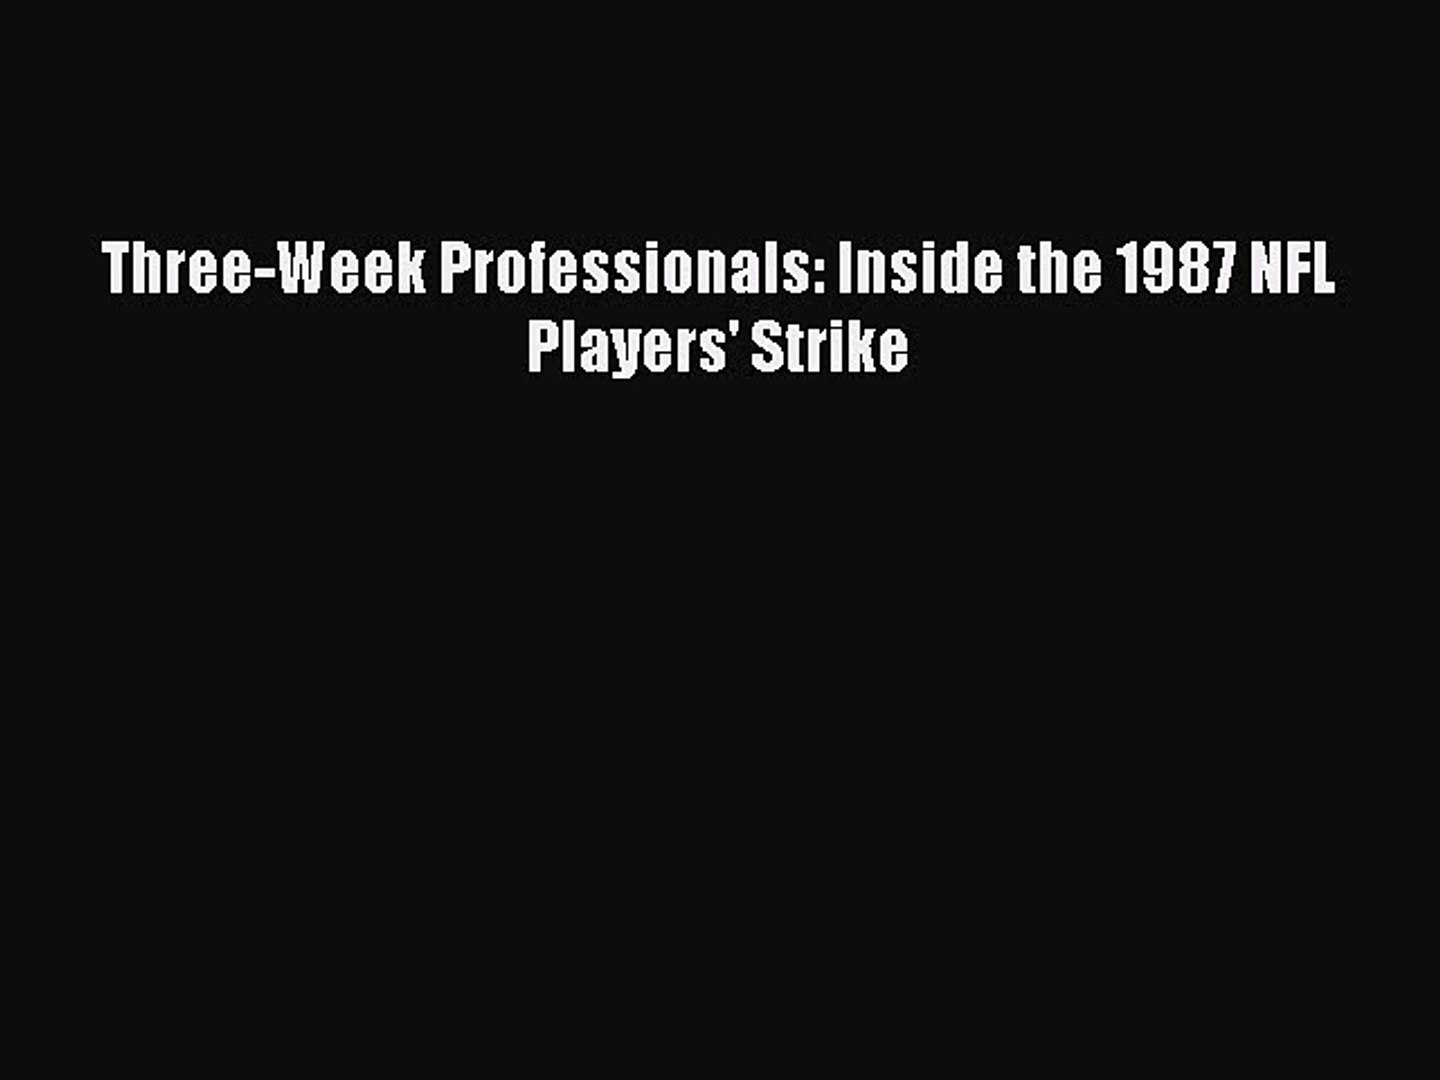 Download Three-Week Professionals: Inside the 1987 NFL Players' Strike PDF Free